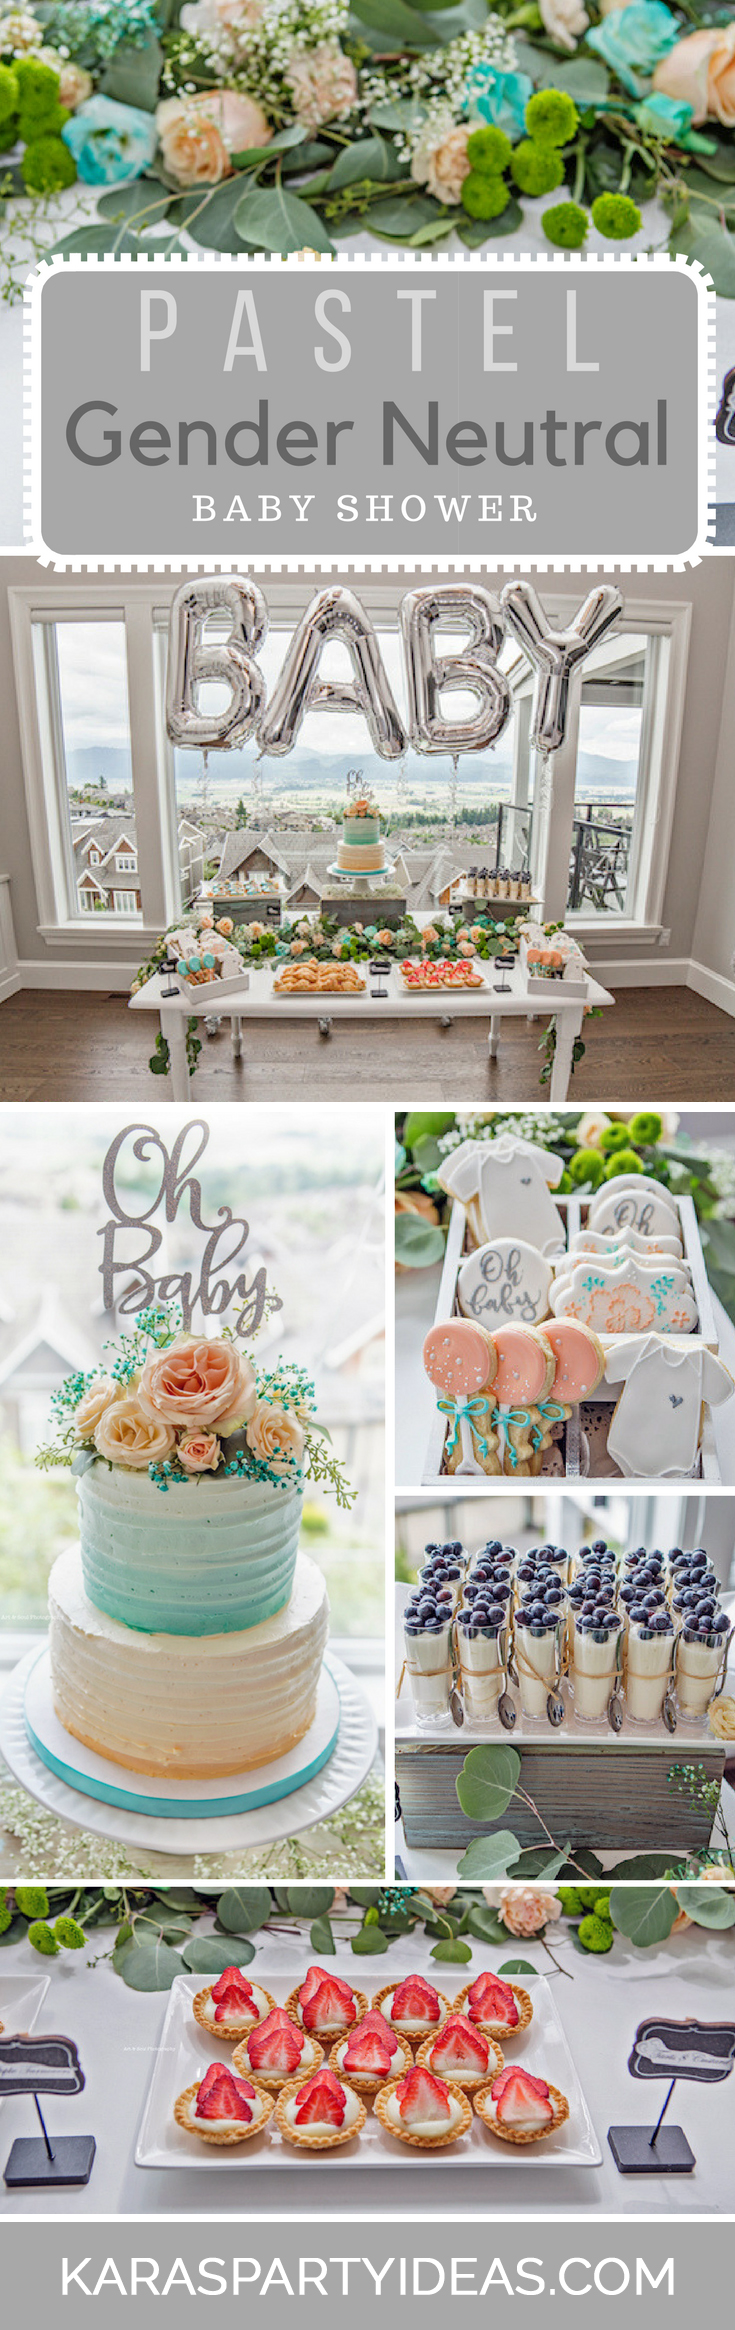 Kara S Party Ideas Pastel Gender Neutral Baby Shower